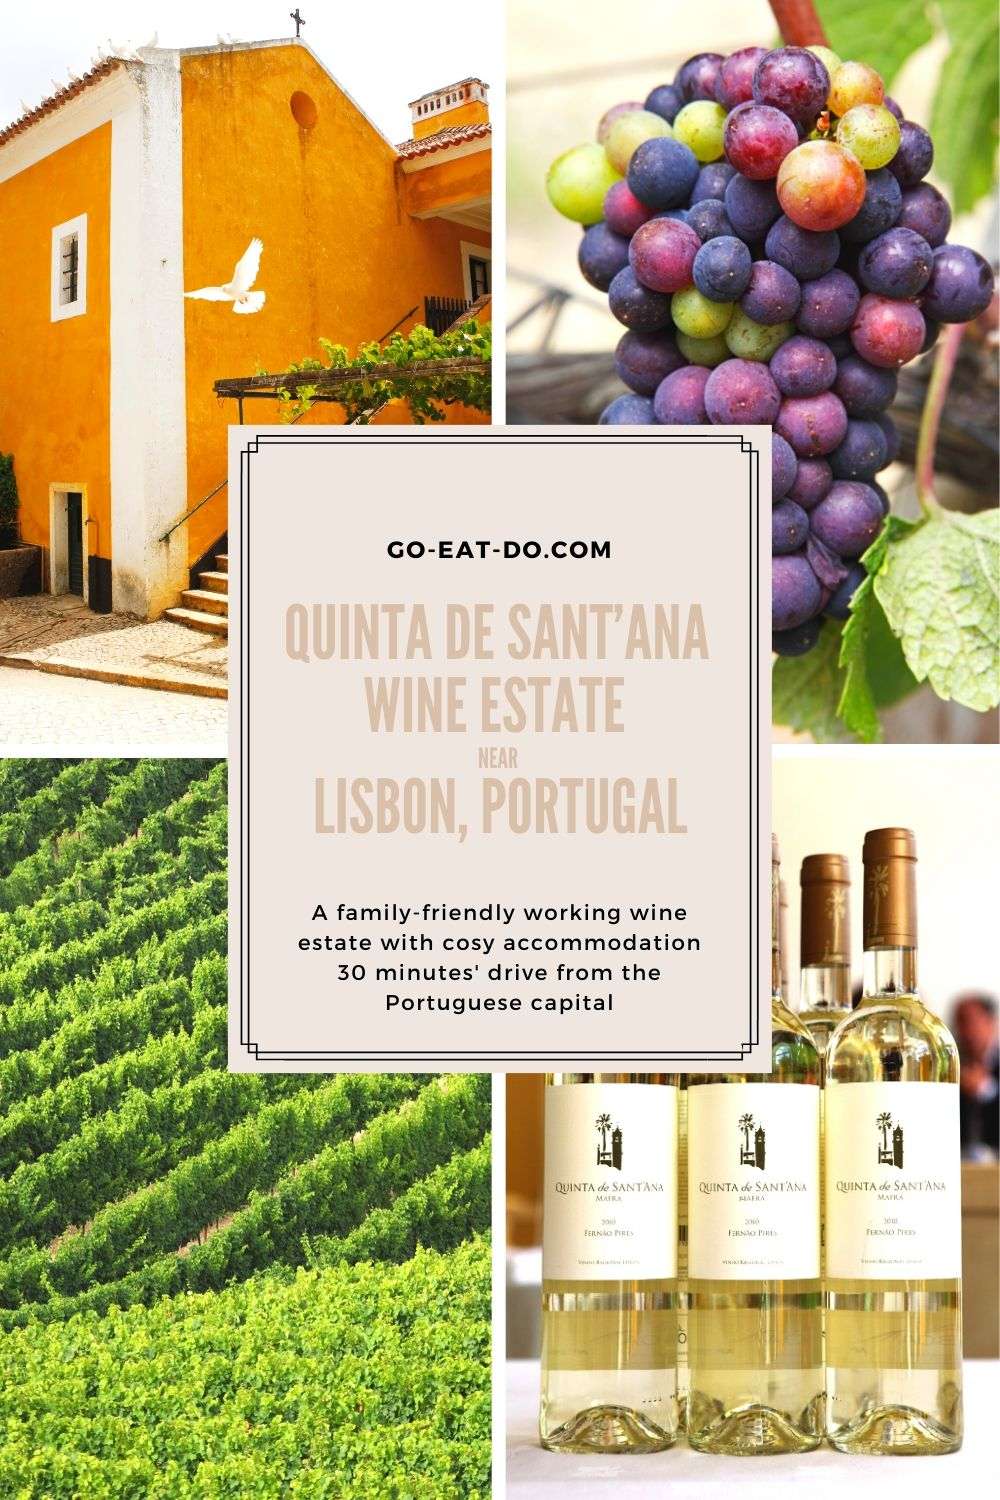 Pinterest pin for the Go Eat Do blog post about the Quinta Sant'ana wine estate near Lisbon, Portugal